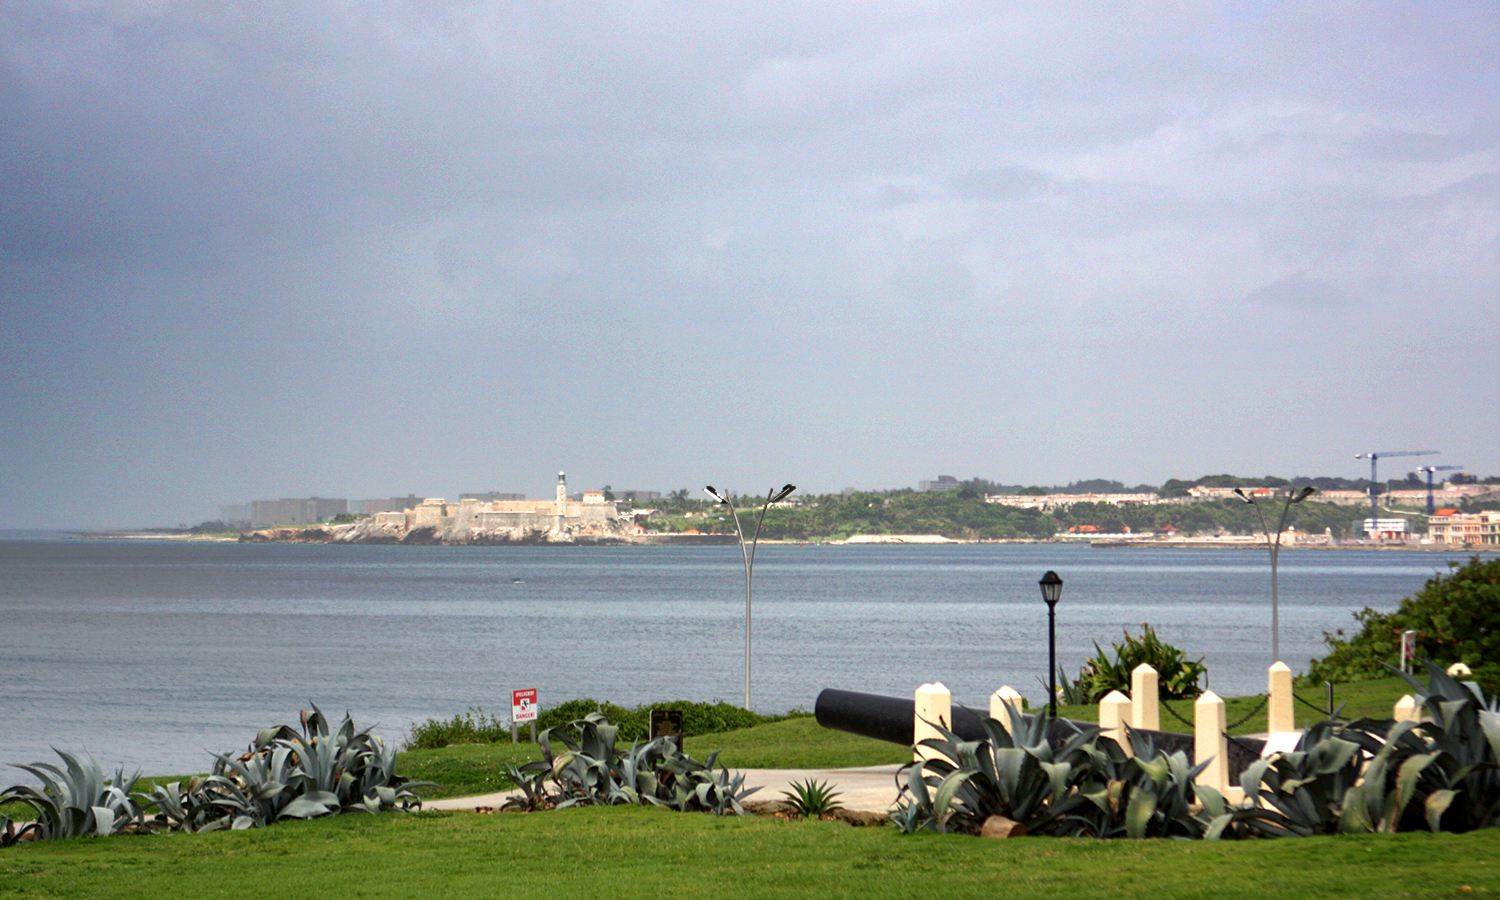 The Castillo De Los Tres Reyes Del Morro is spotted across the bay from Hotel Nacional de Cuba.